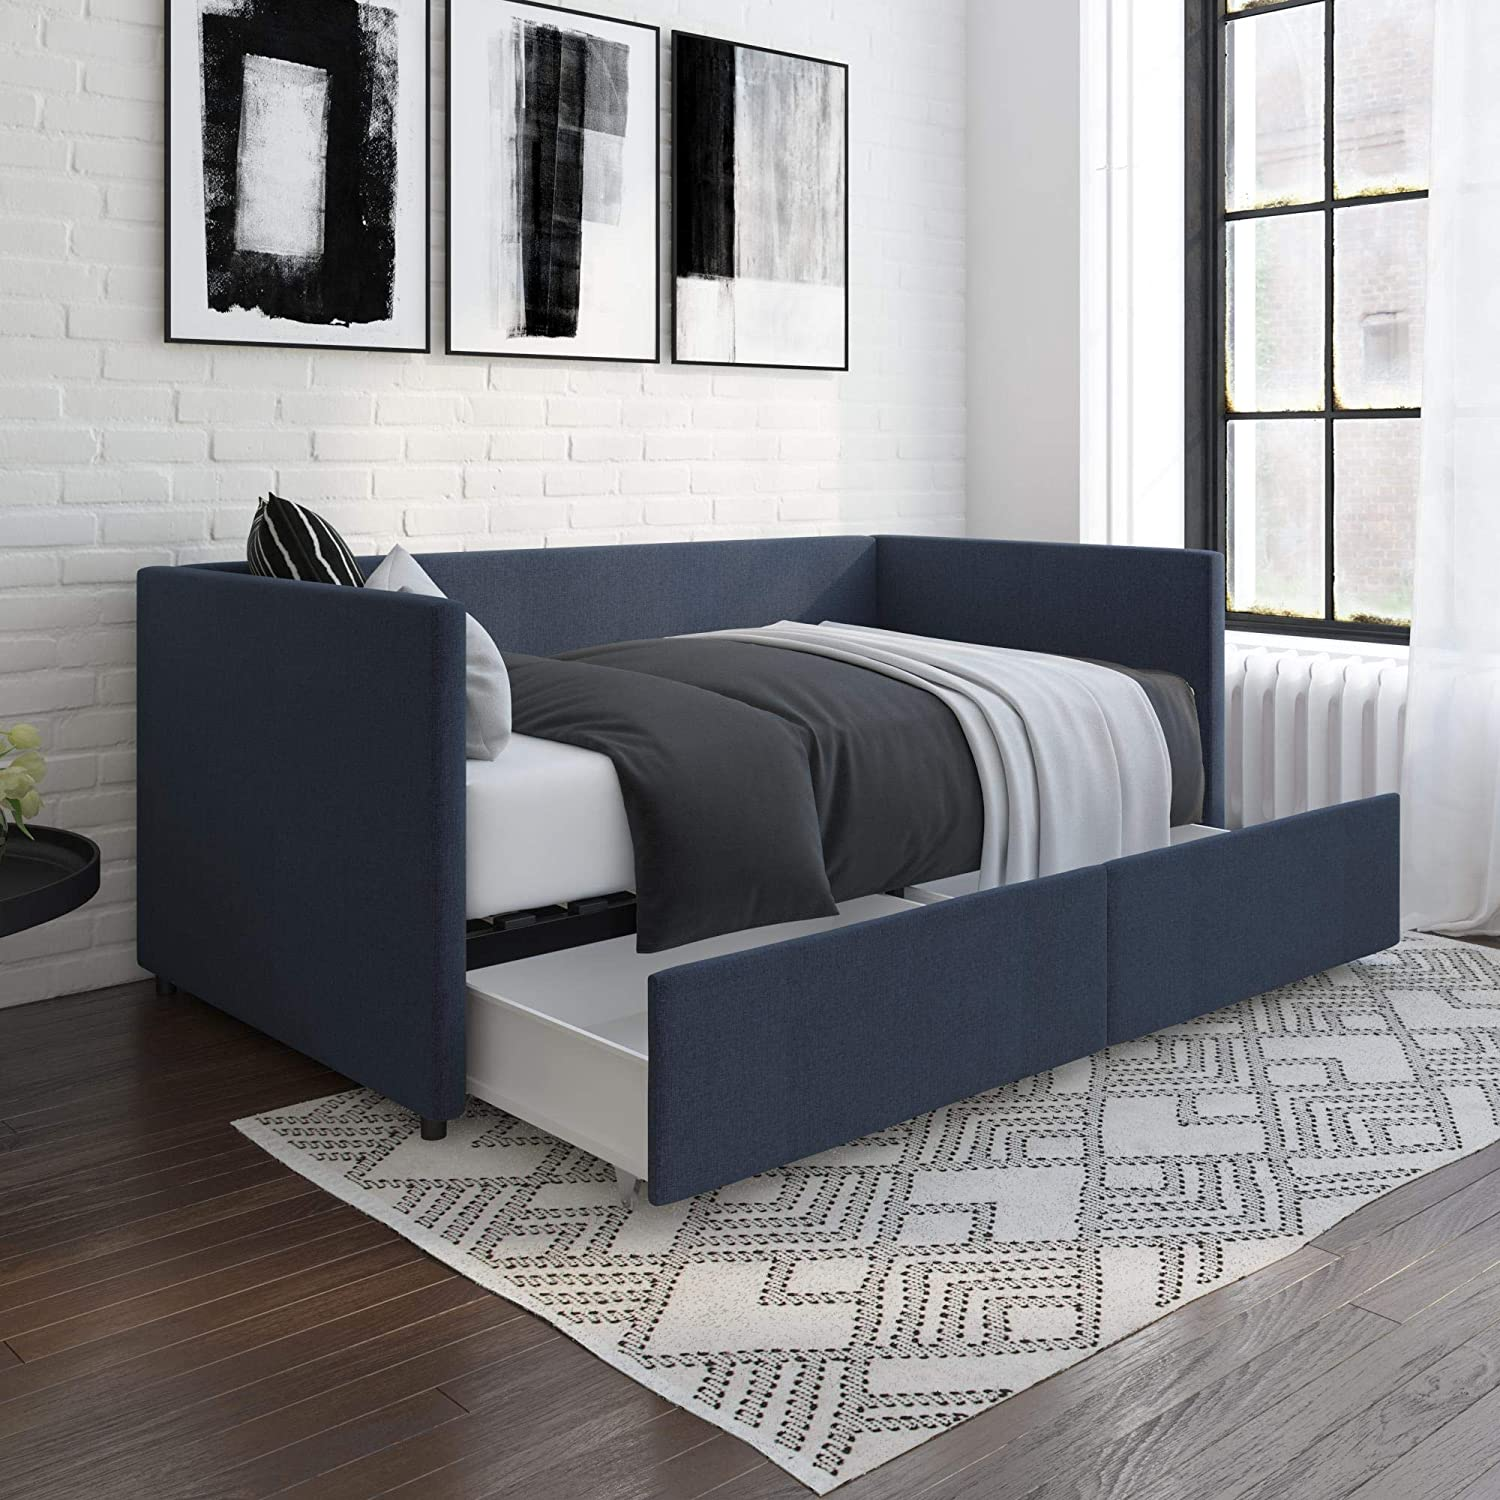 Amazon com dhp theo urban daybed with storage drawers small space furniture blue linen kitchen dining